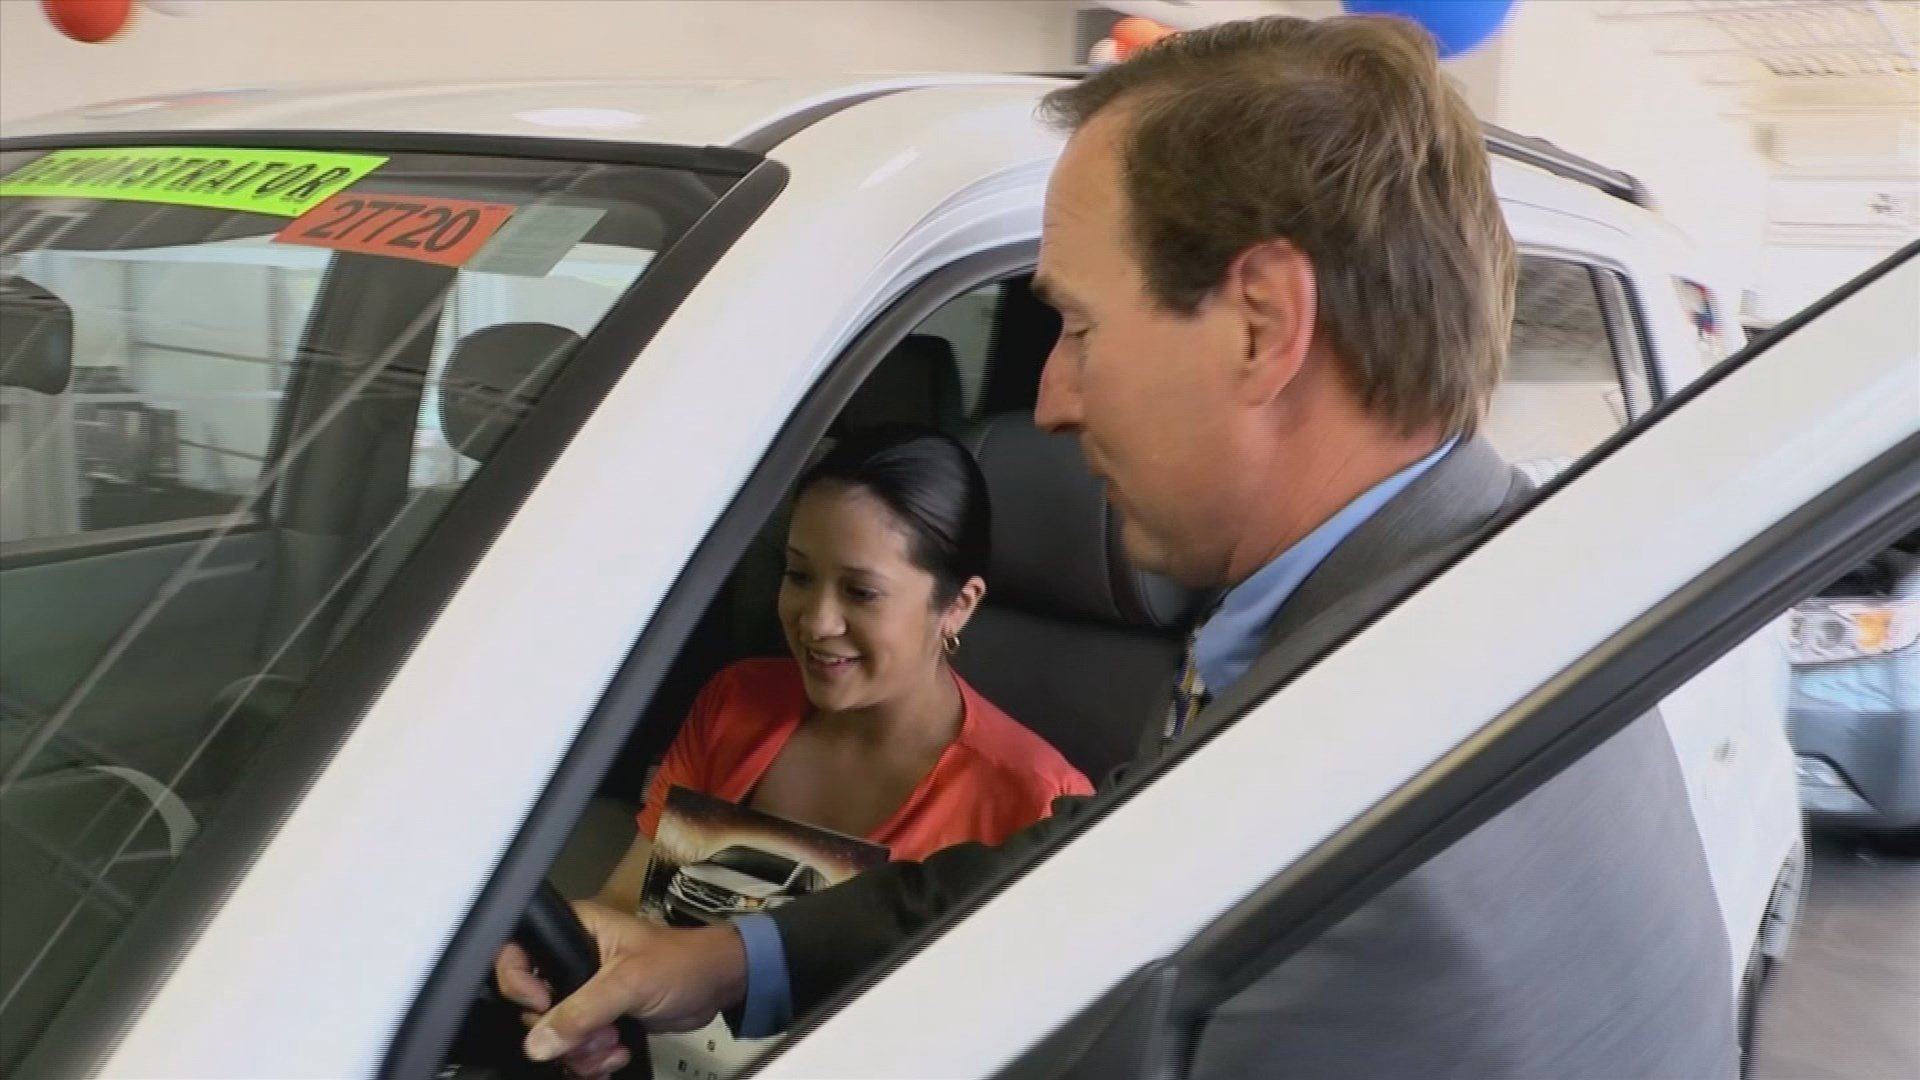 If you're in the market for a new ride, there are things to consider before signing on the dotted line. (Source: 3TV/CBS 5)